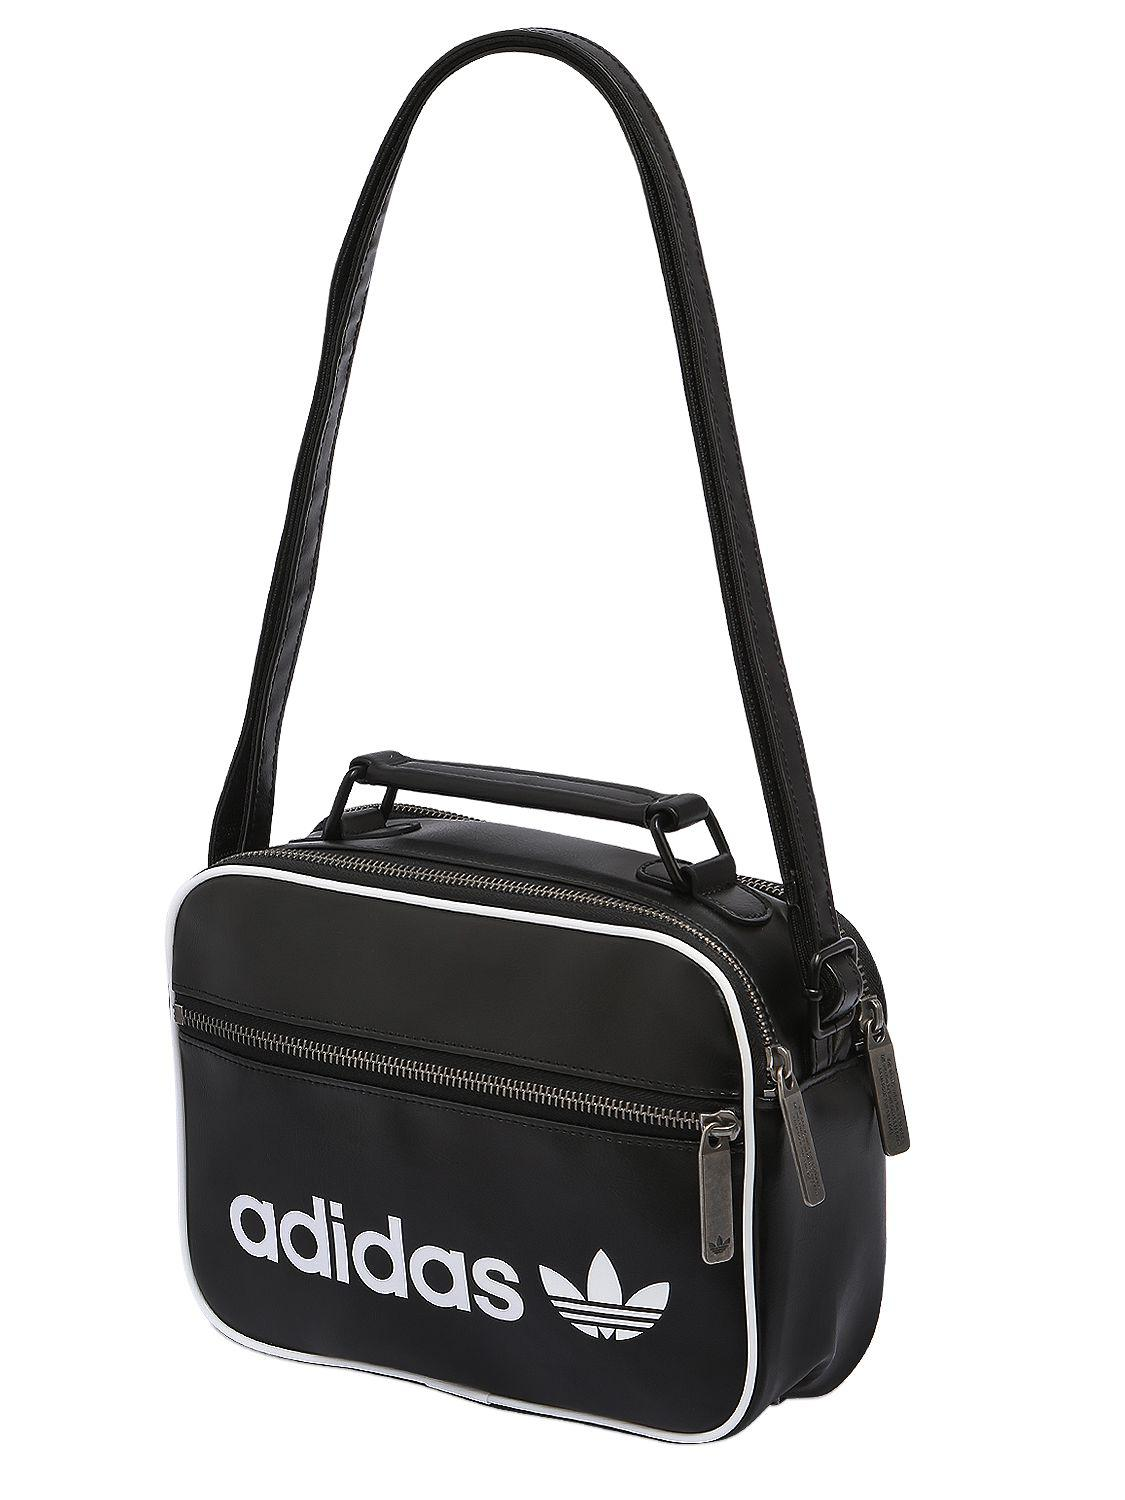 2e5b92a2023 ... Adidas Originals Mini Airliner Vintage Faux Leather Bag in Black - Lyst  hot product 19ee3 fbf5f ...